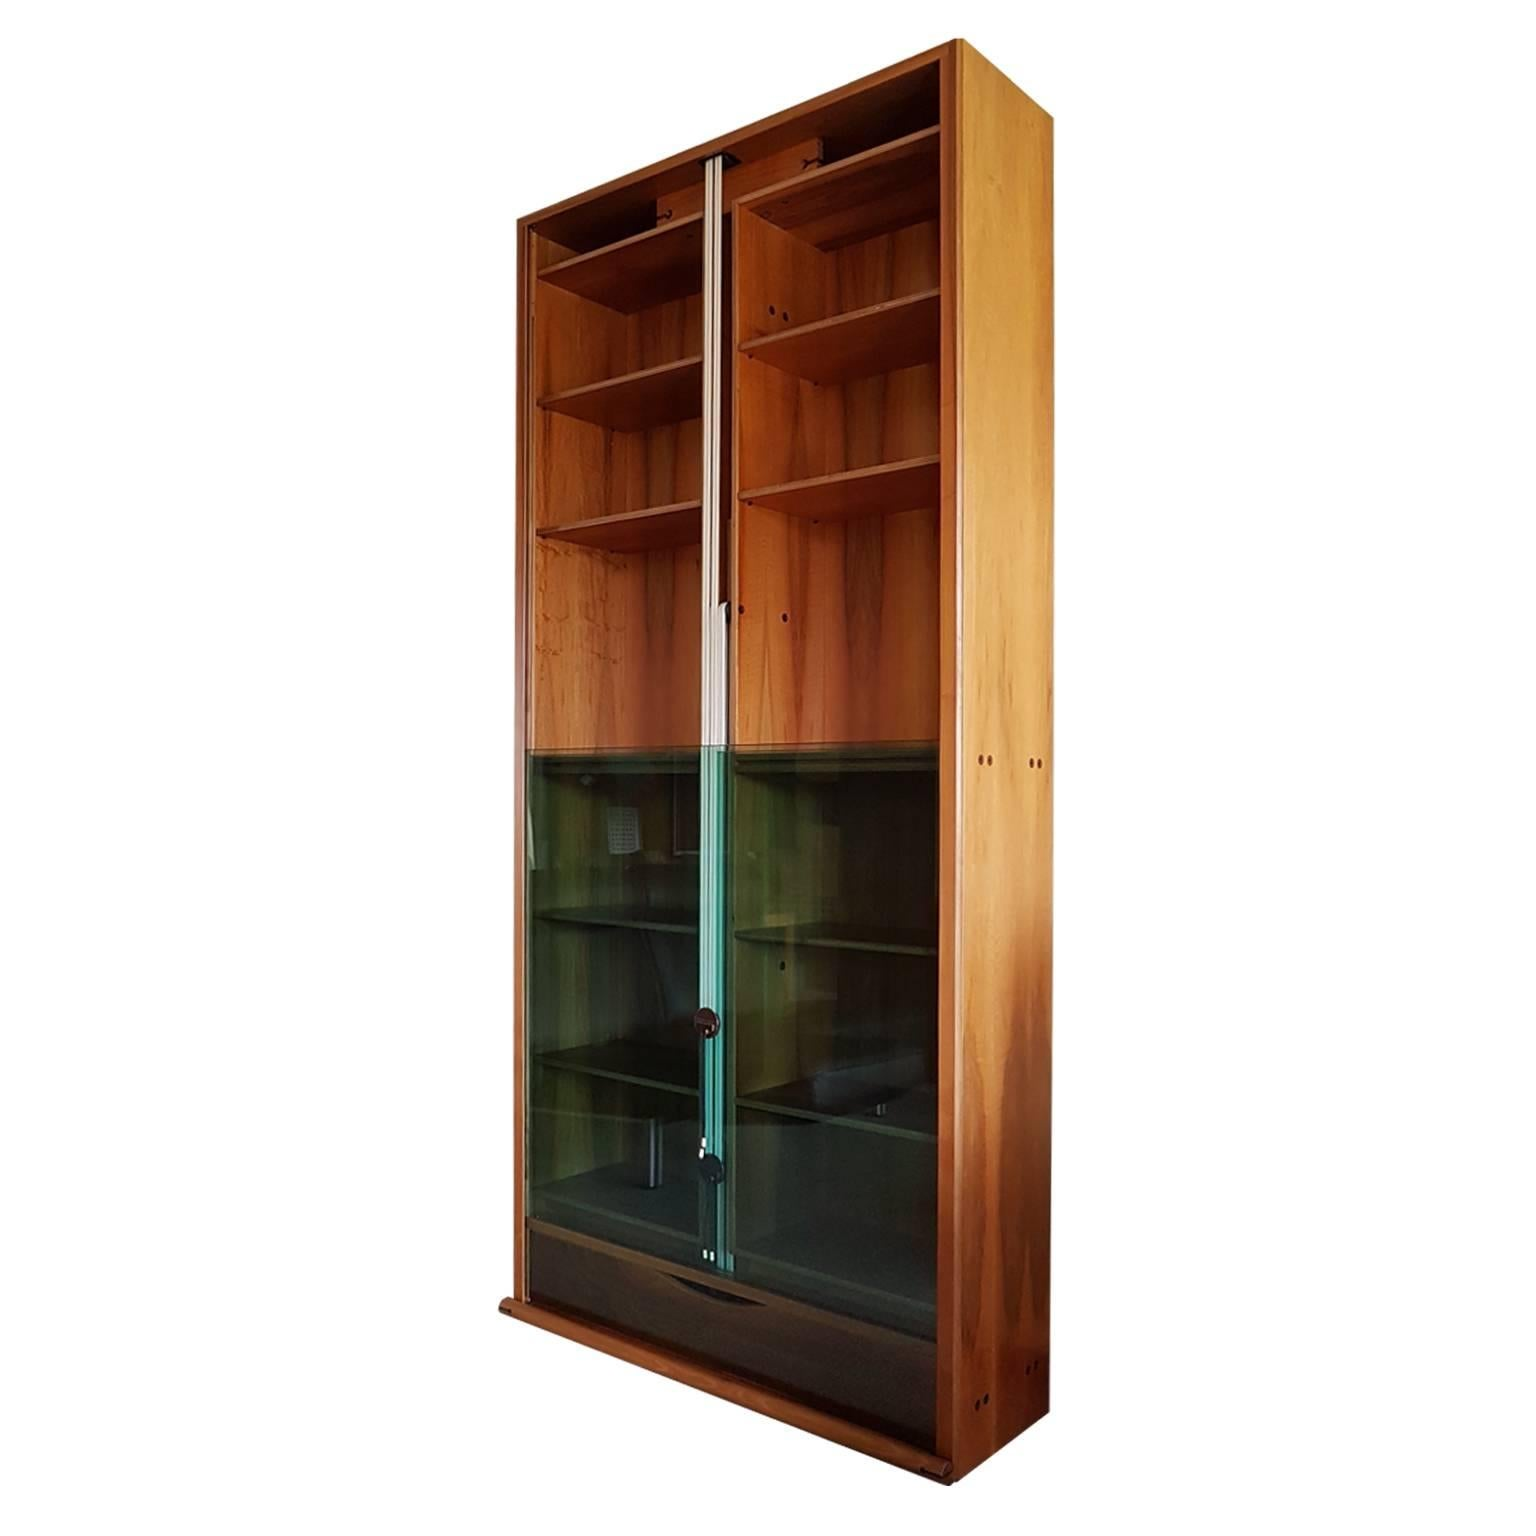 Italian Carlo Scarpa Walnut Bookcase With Glass Doors And Wood Shelves